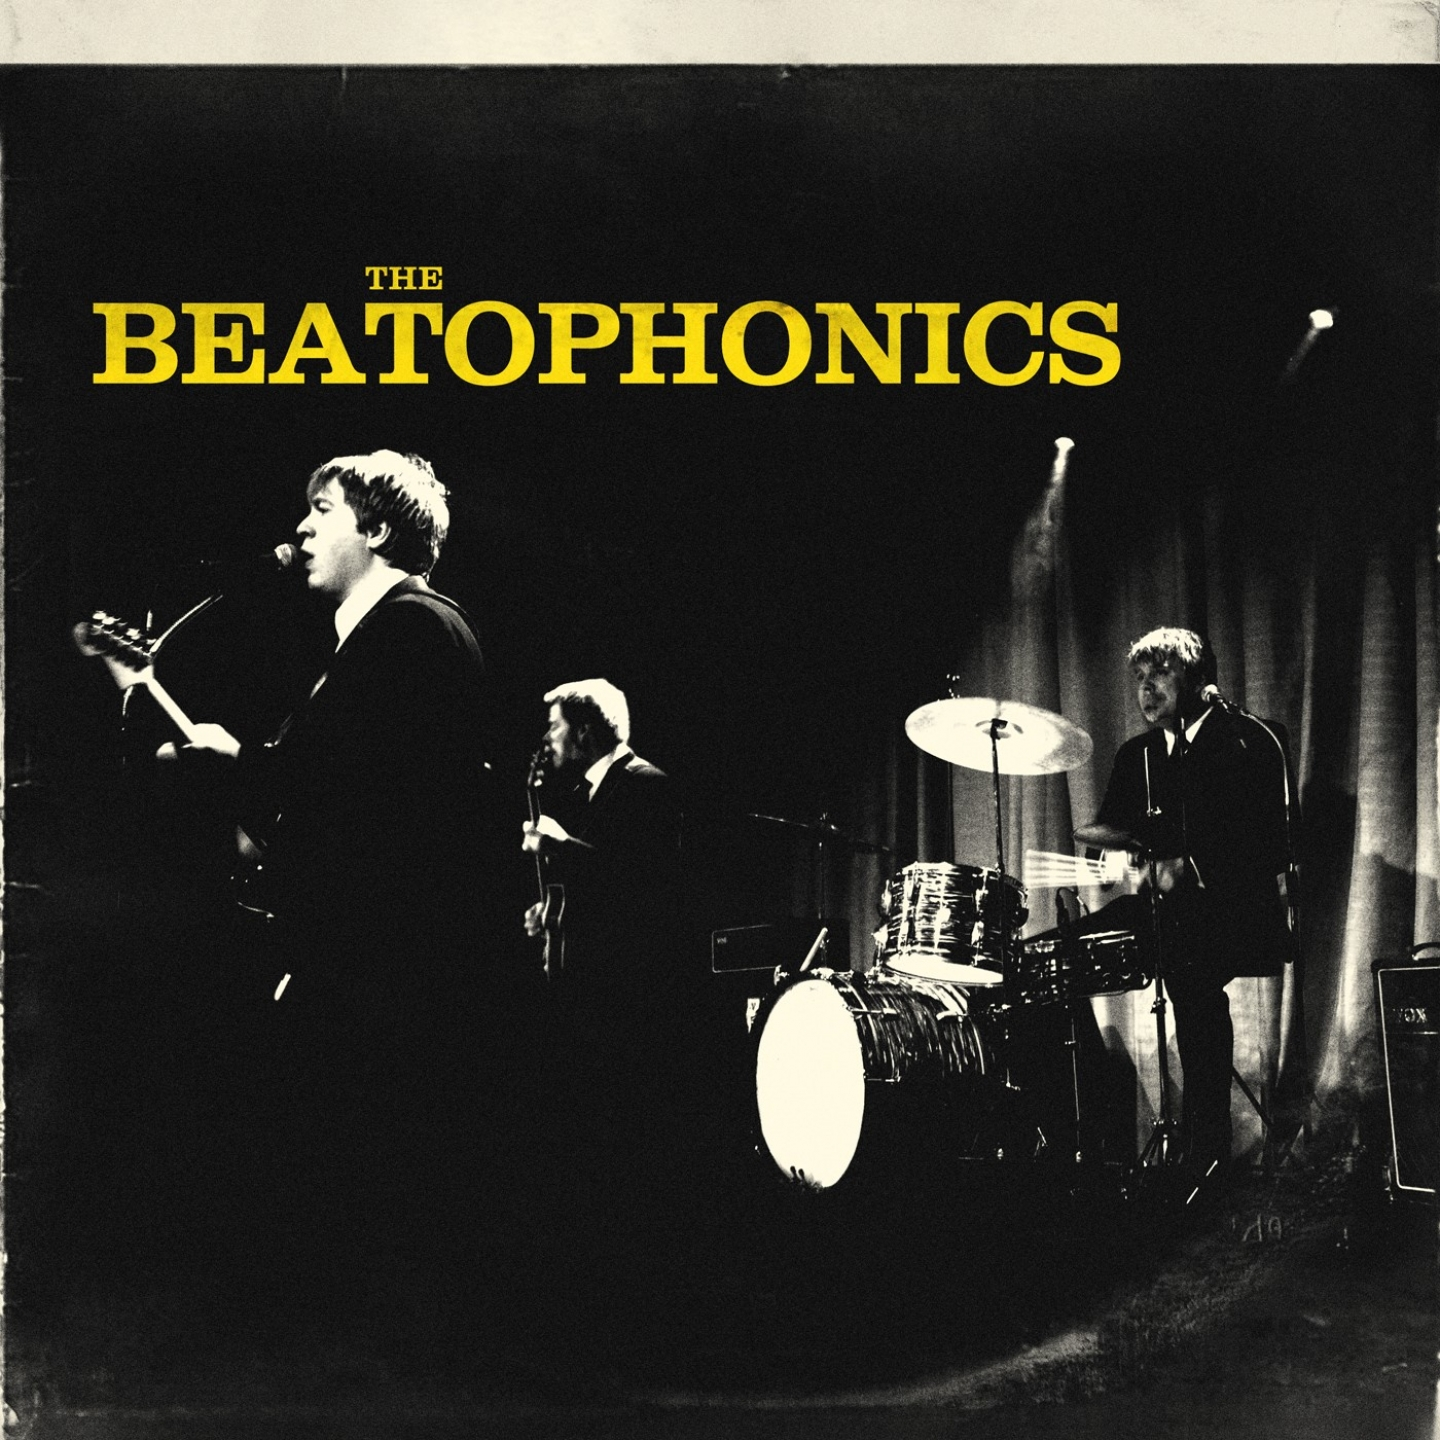 The Beatophonics – 'The Beatophonics' (Album)